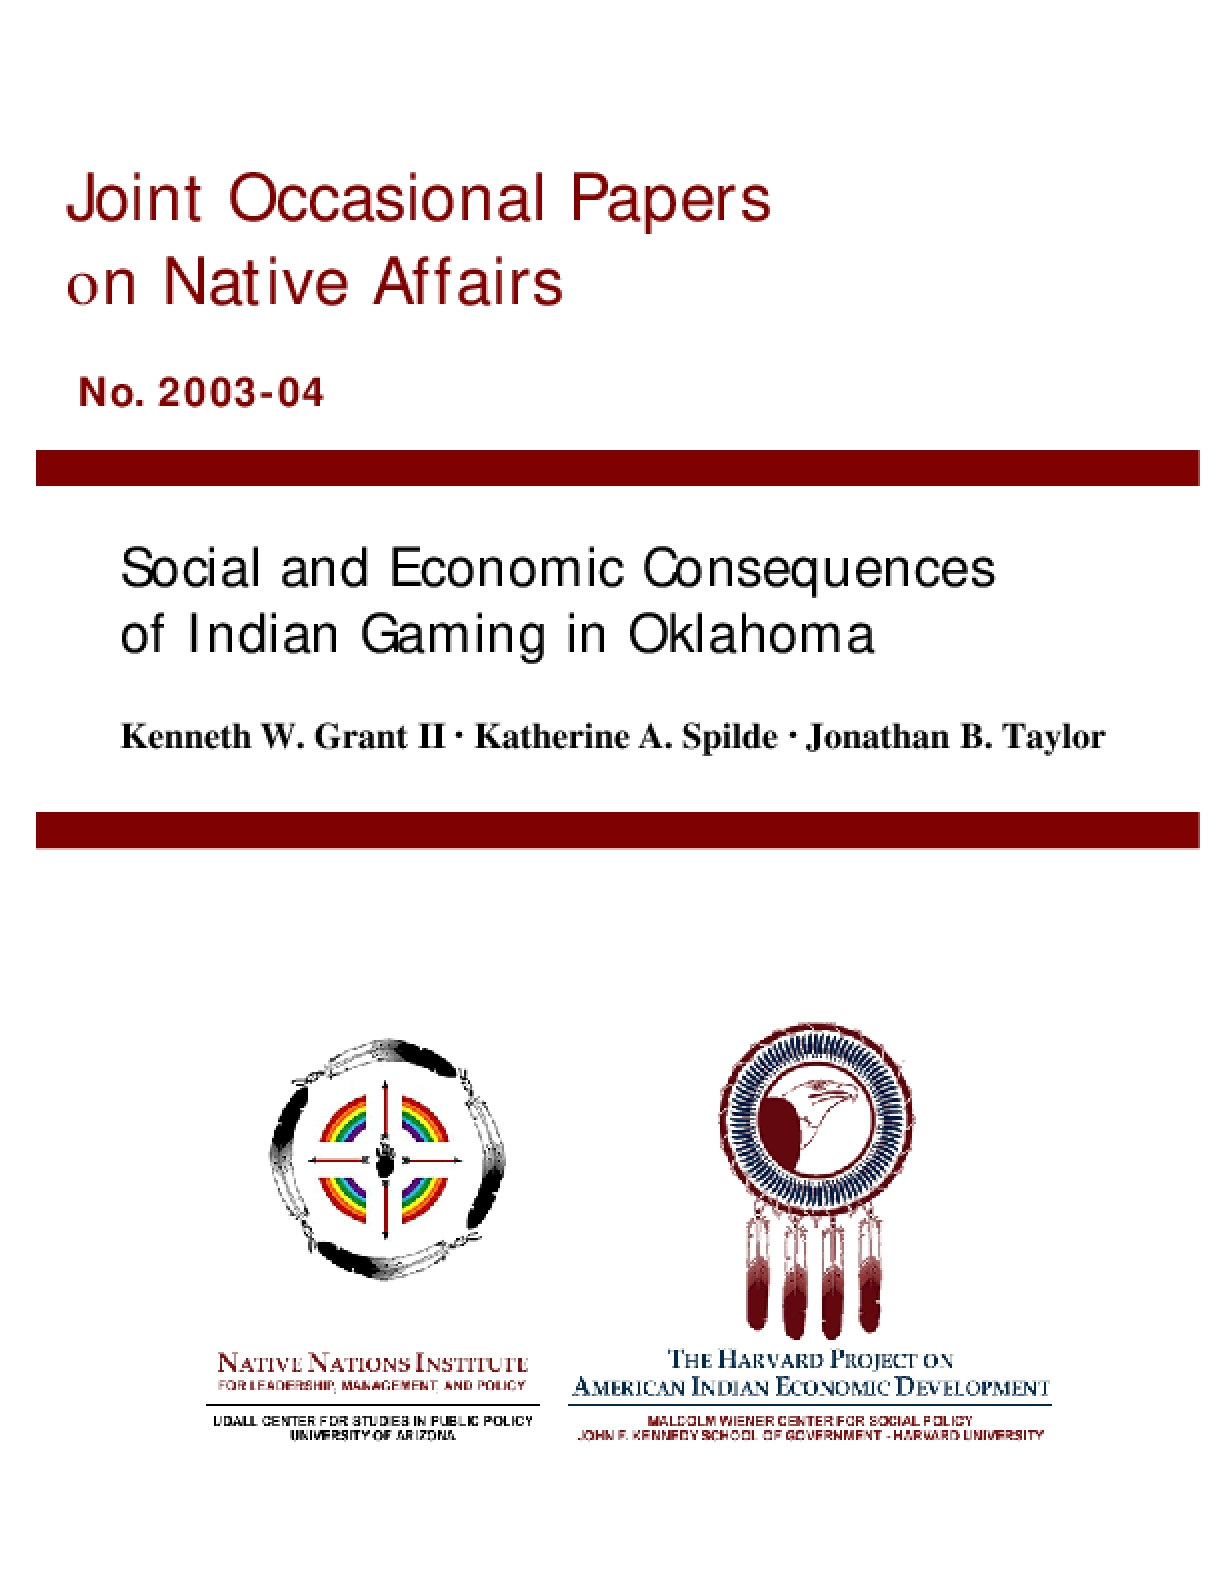 Social and Economic Consequences of Indian Gaming in Oklahoma